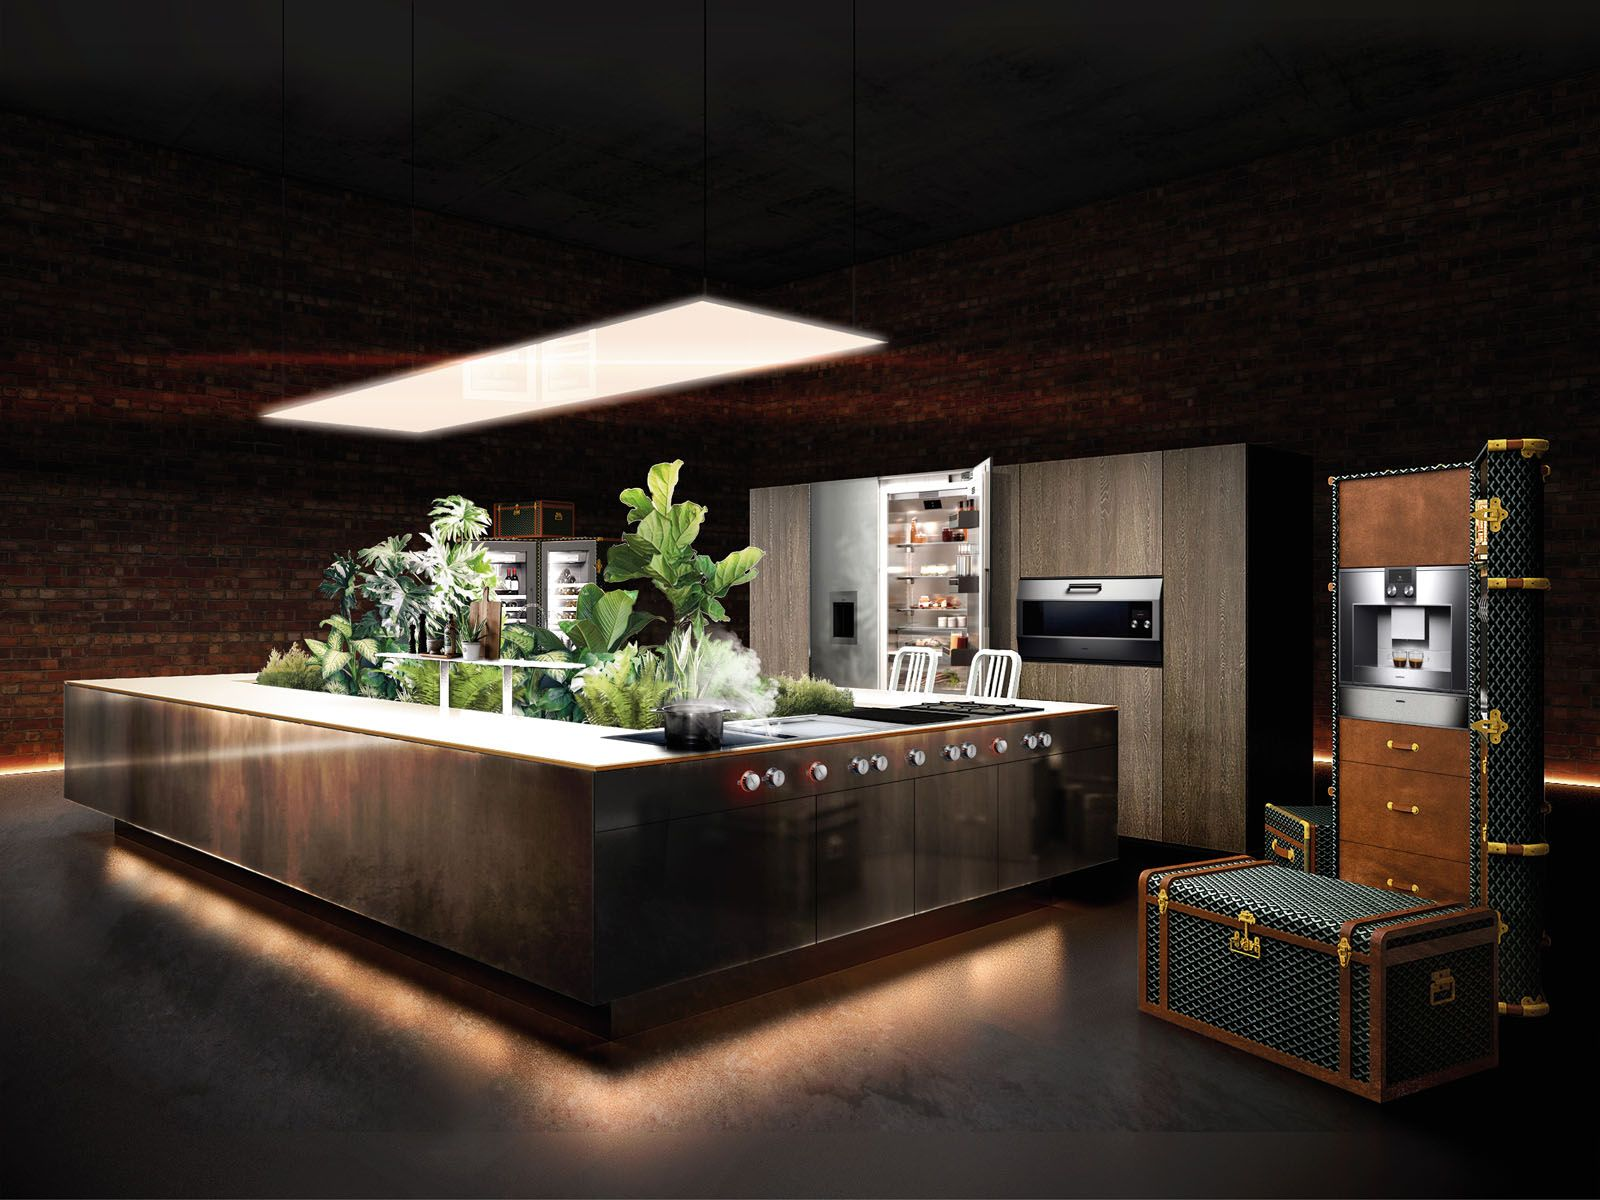 A Kitchen Island Integrated With An Indoor Garden? Even Better, You Can Fit It In An Apartment